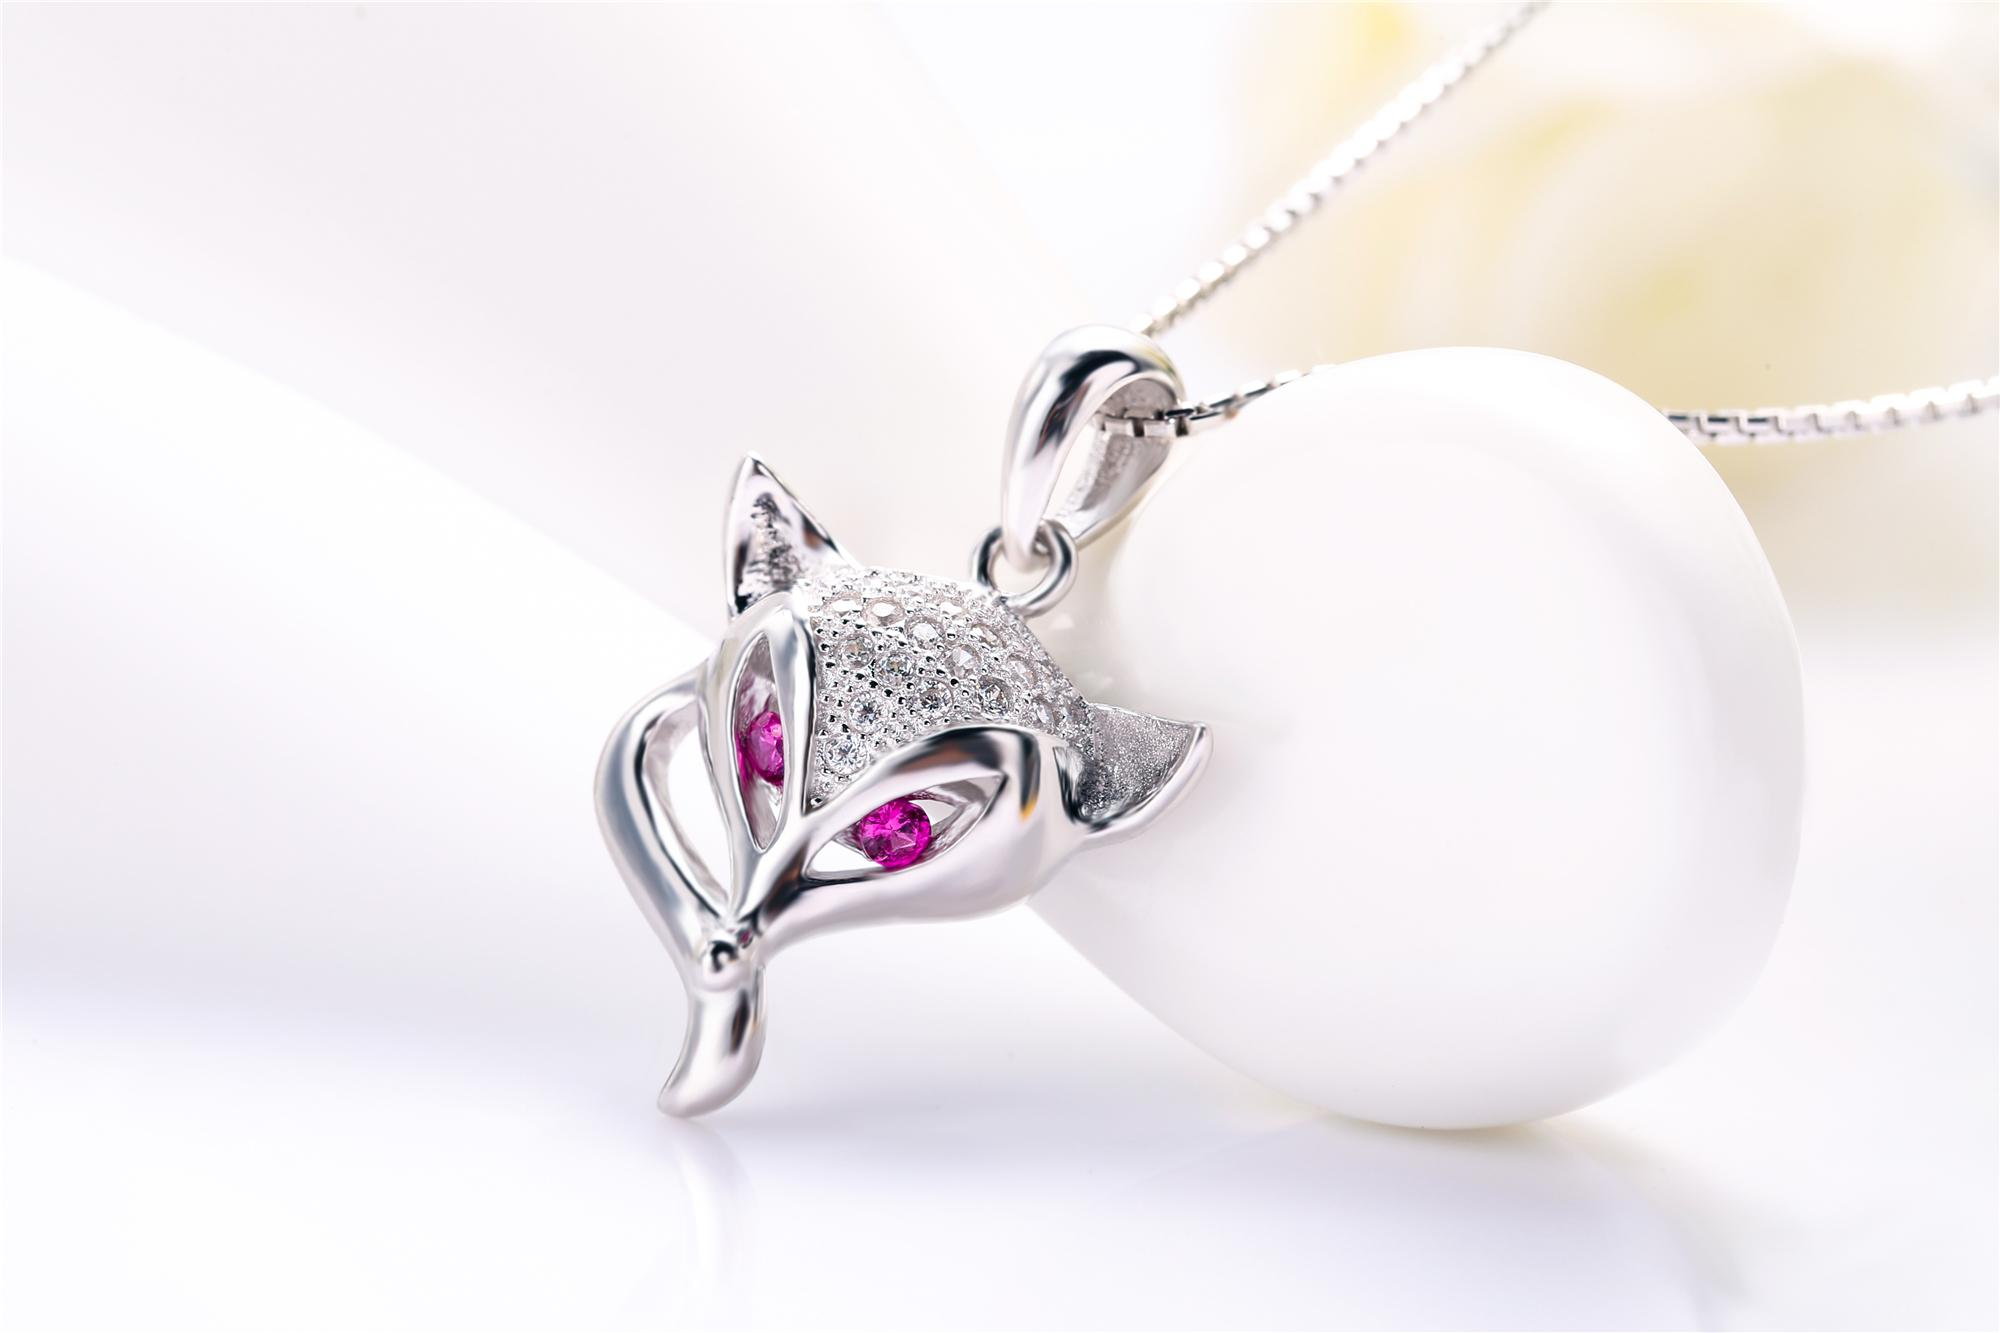 S925 sterling silver material real rhodium plated animal fox pendant high quality fashion women popular style jewellery